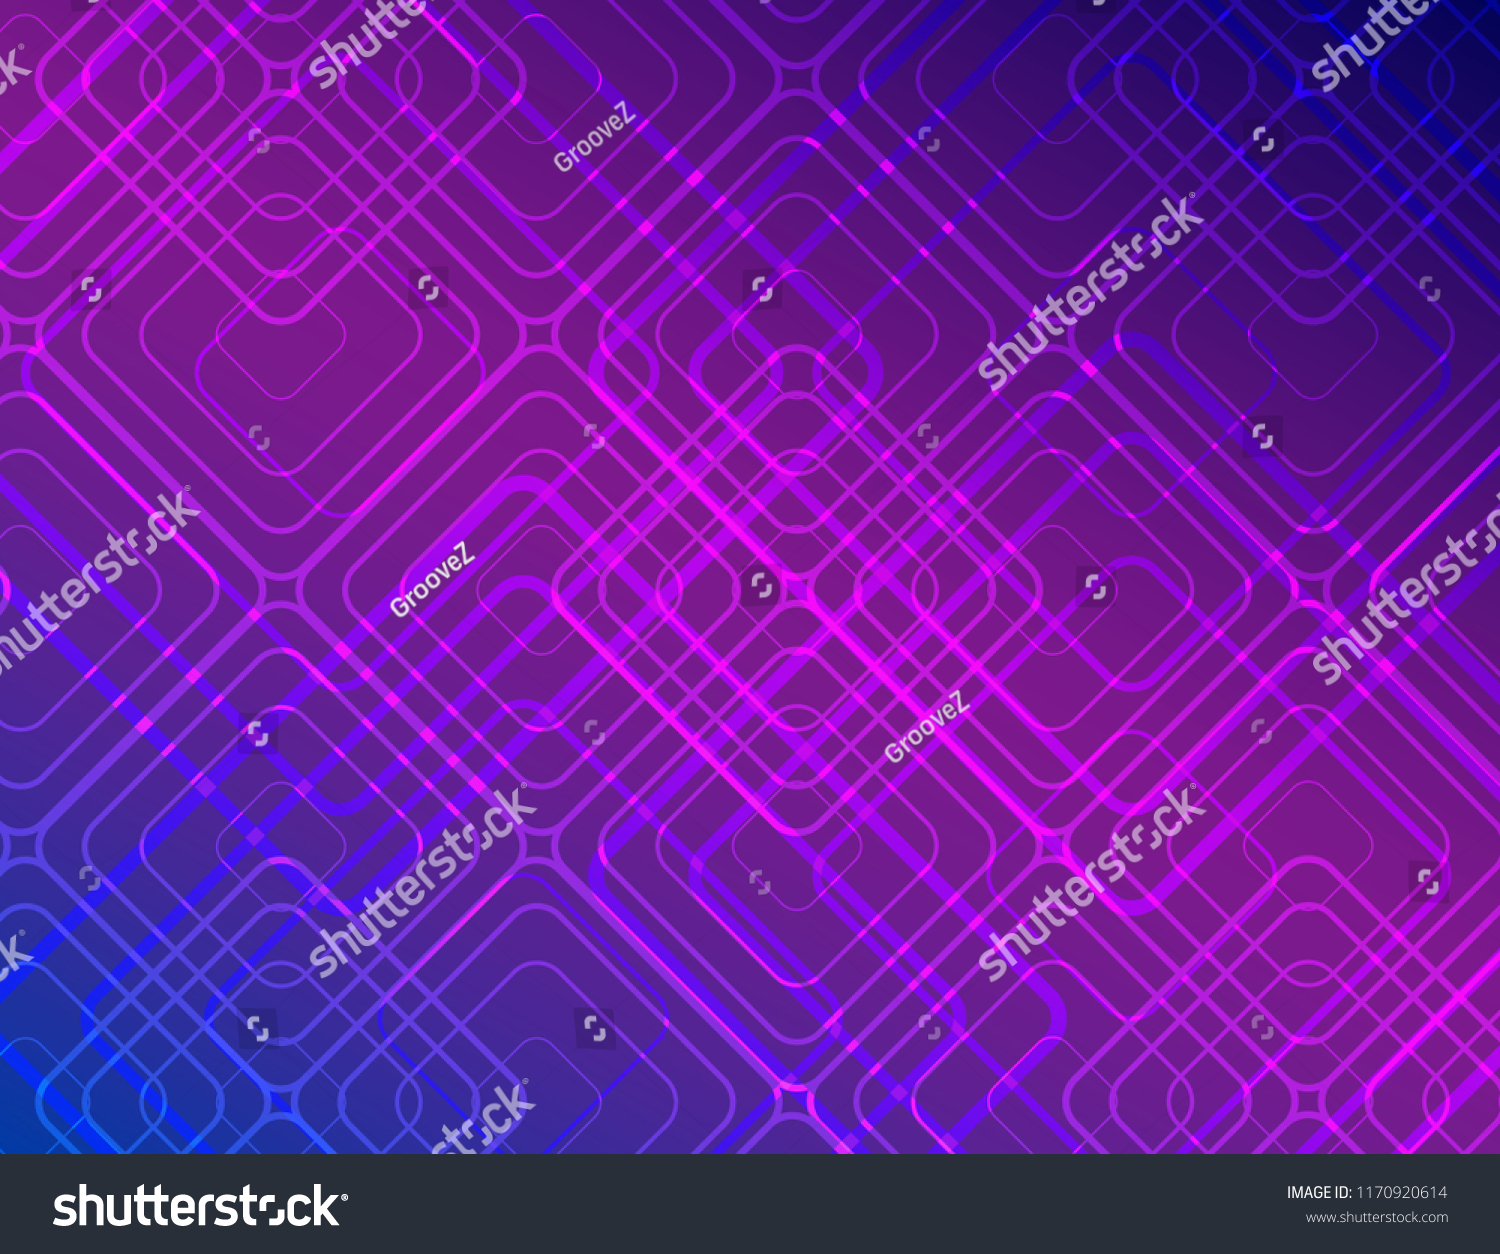 Blue And Grey Circuit Wallpaper Abstract Geometric Photo Of Vector Background With High Tech Board Technological Conceptvector Illustrationpolygonal Science